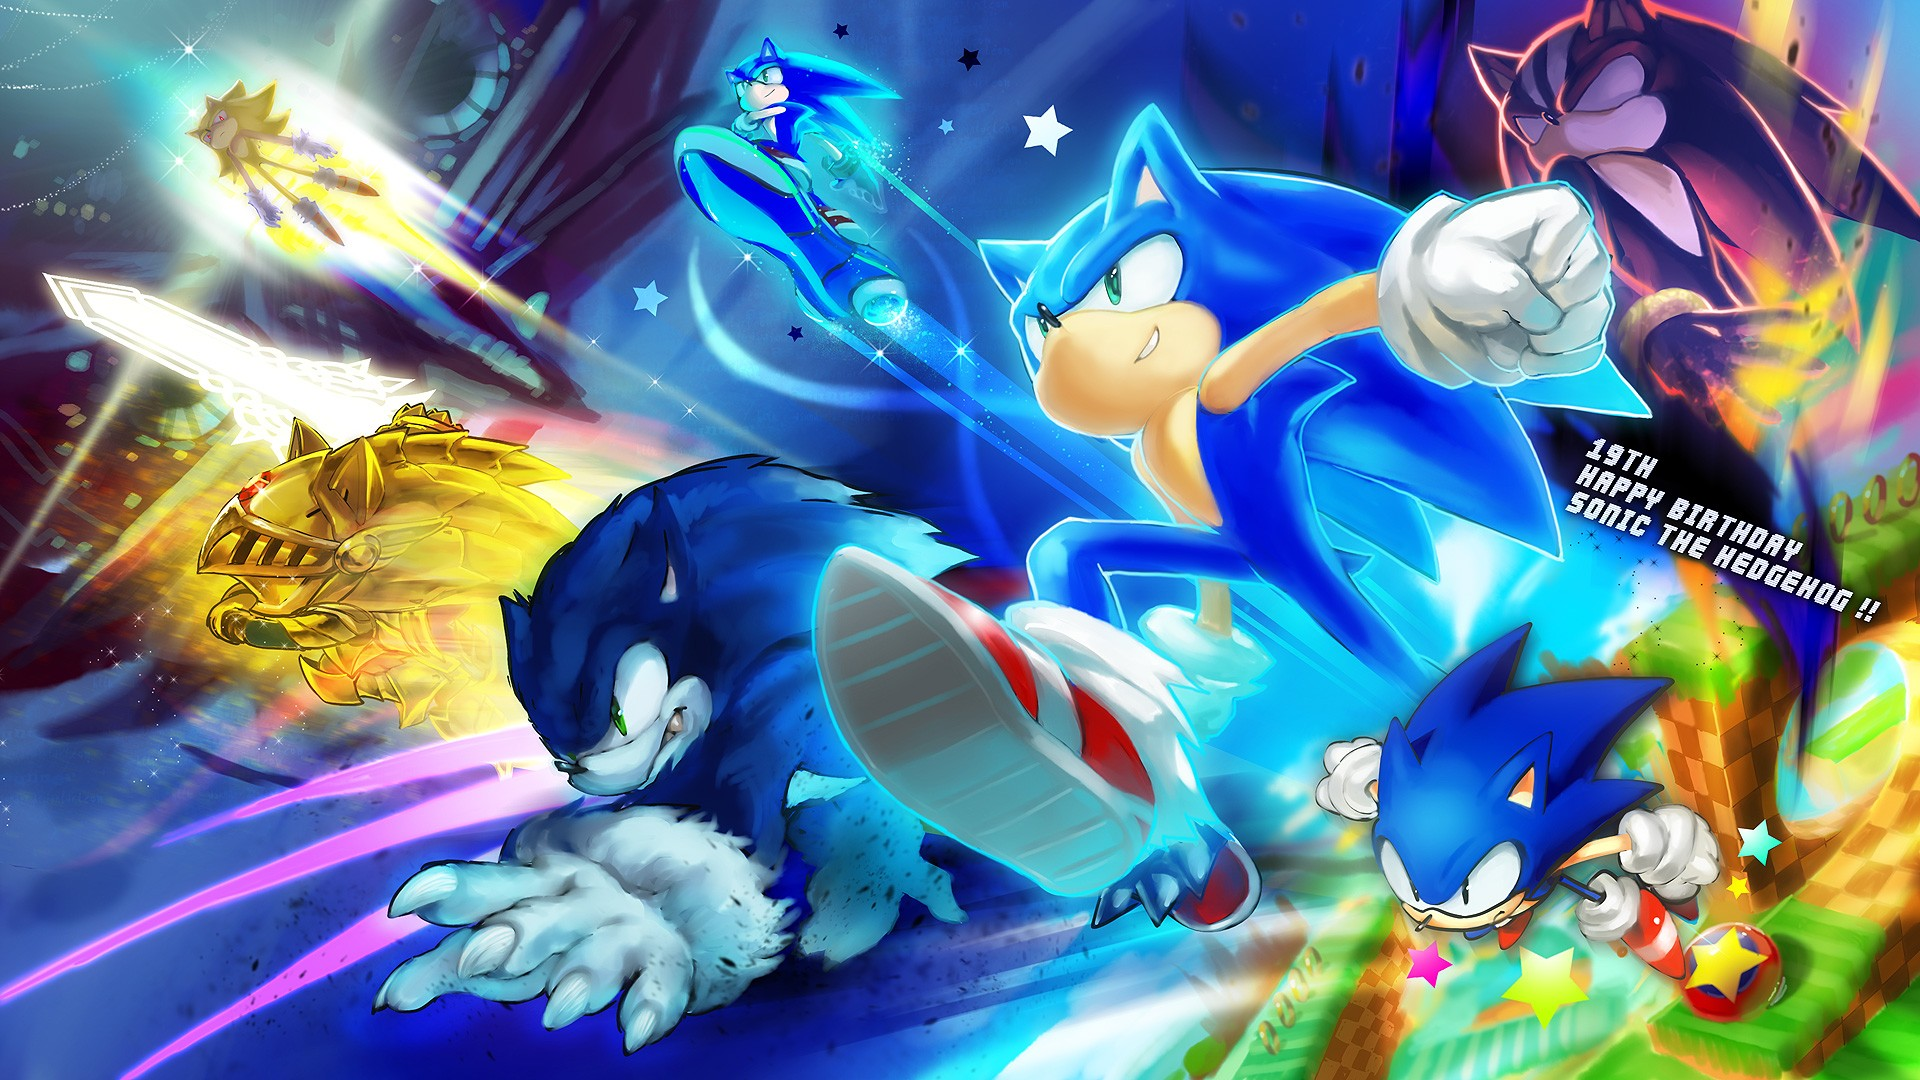 247 Sonic The Hedgehog HD Wallpapers | Backgrounds - Wallpaper Abyss